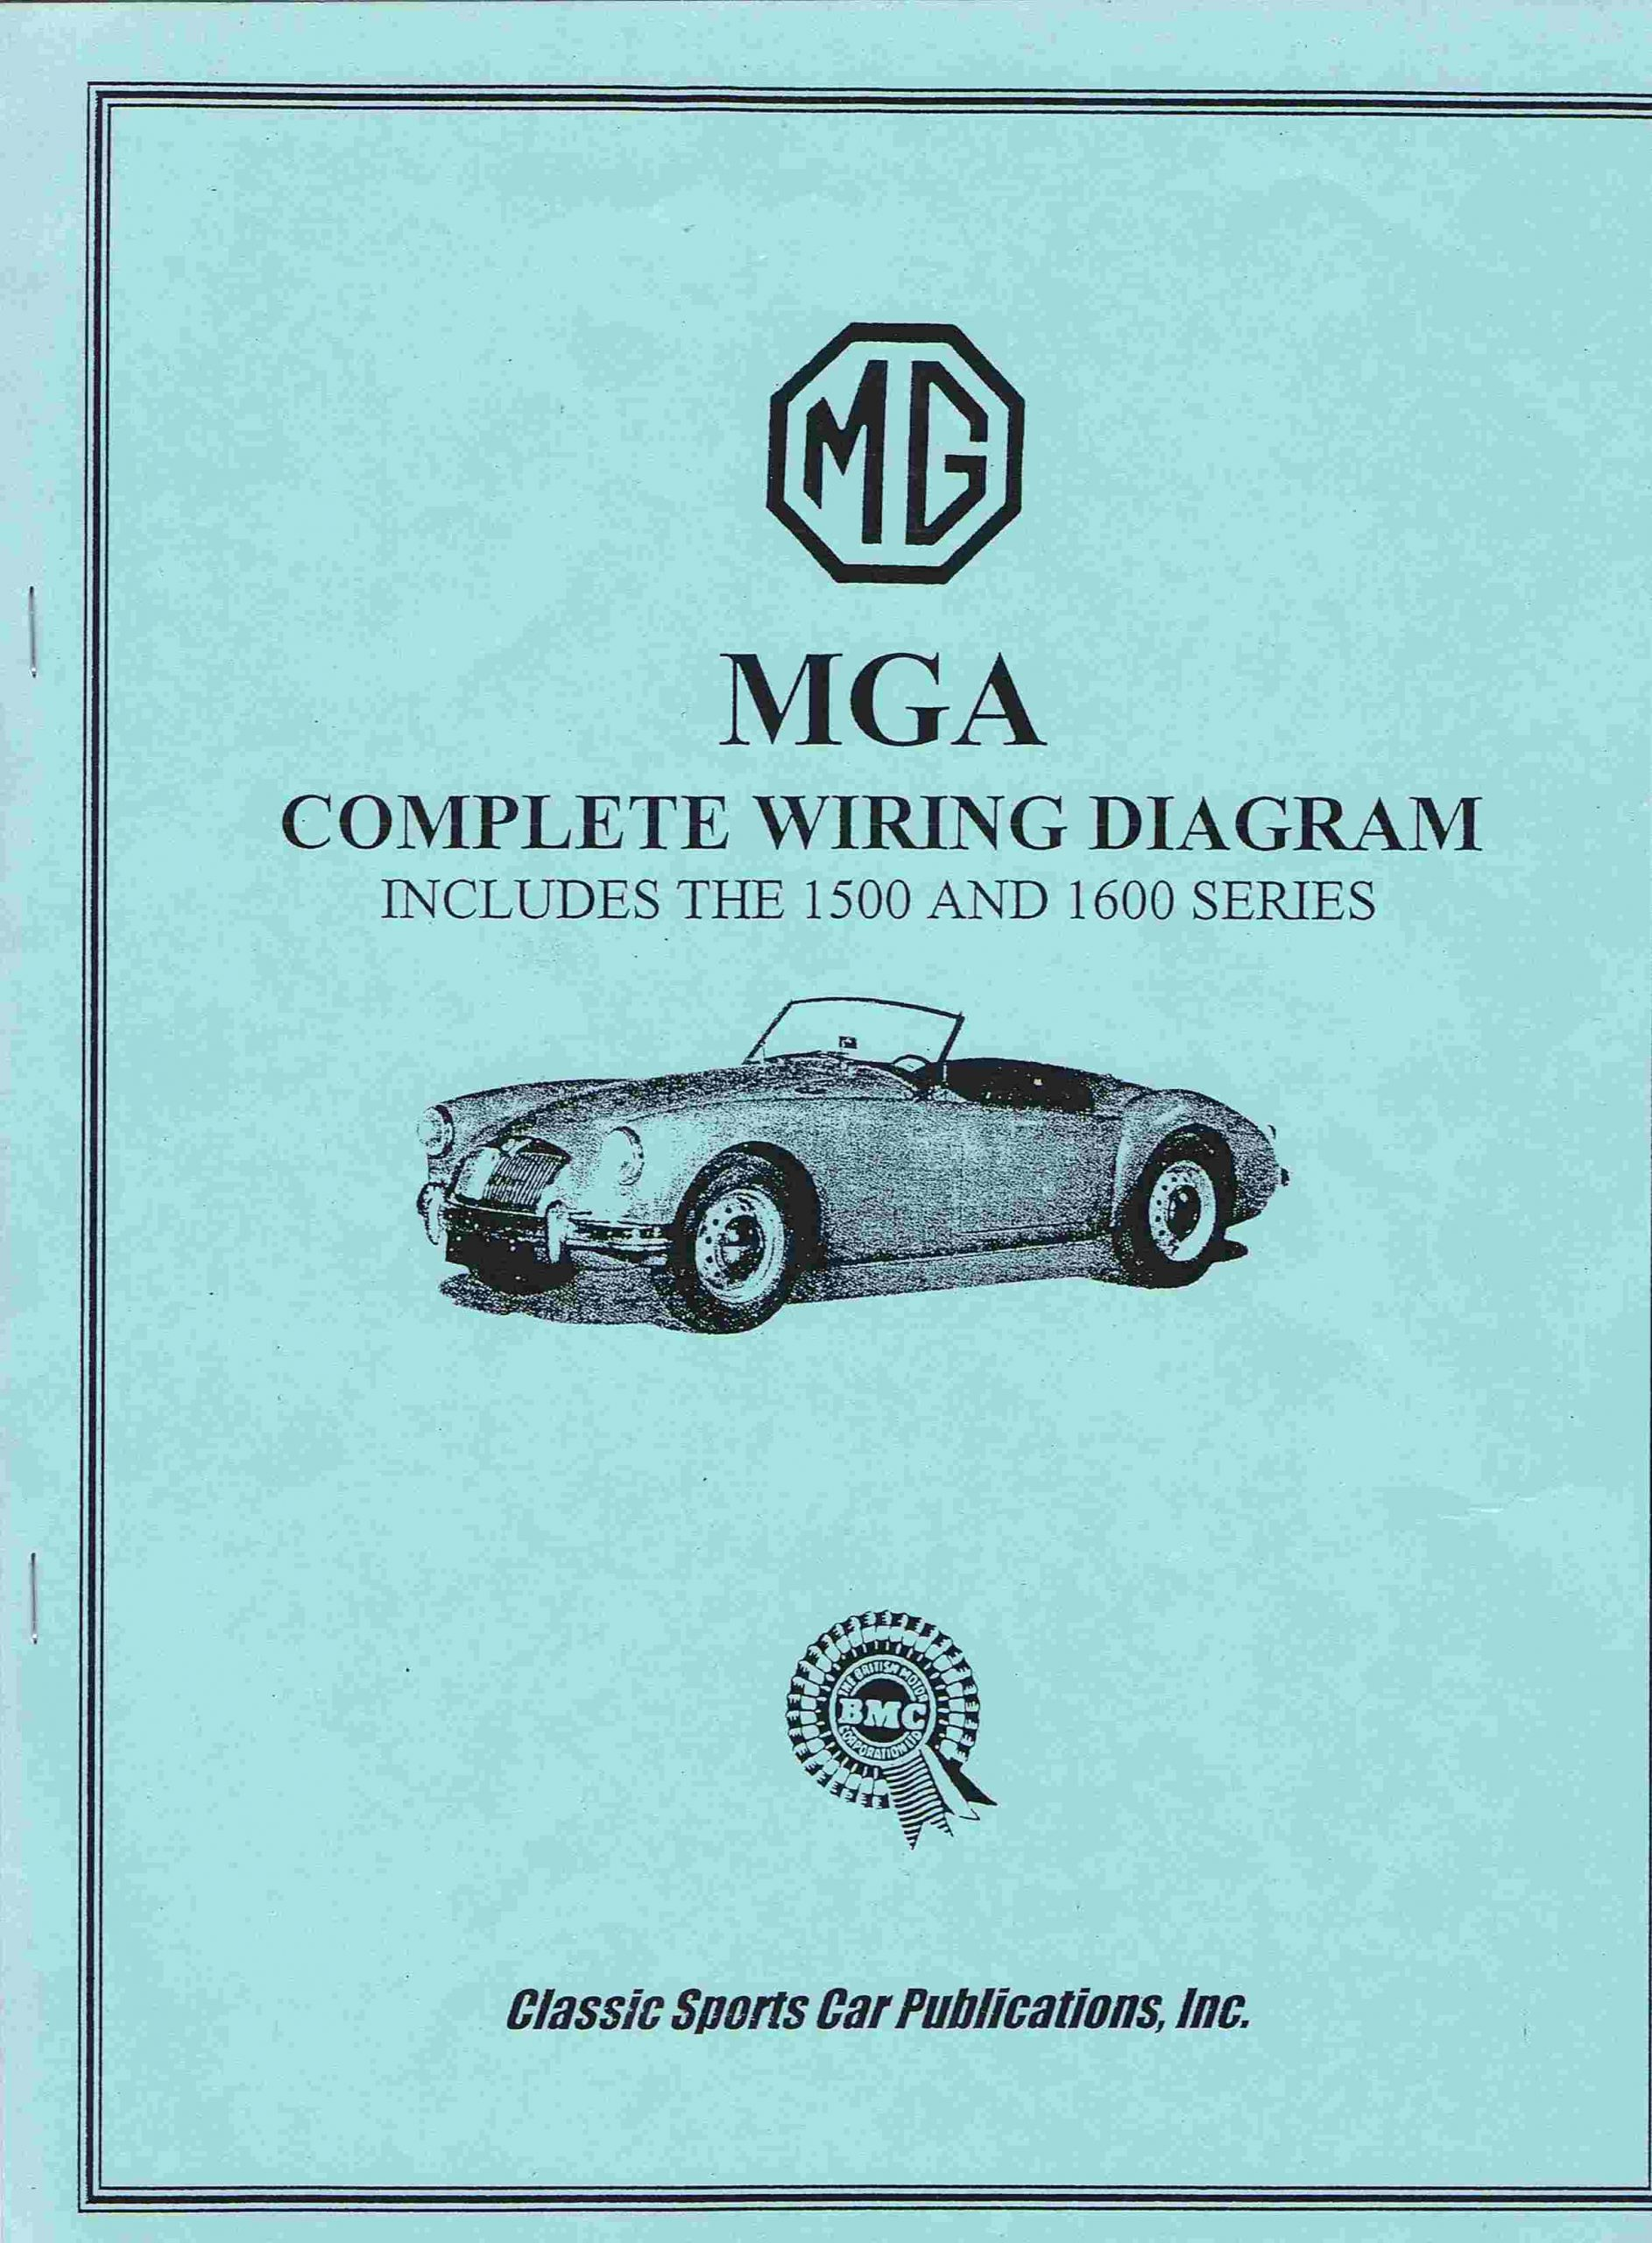 MGA The Complete Wiring Diagram